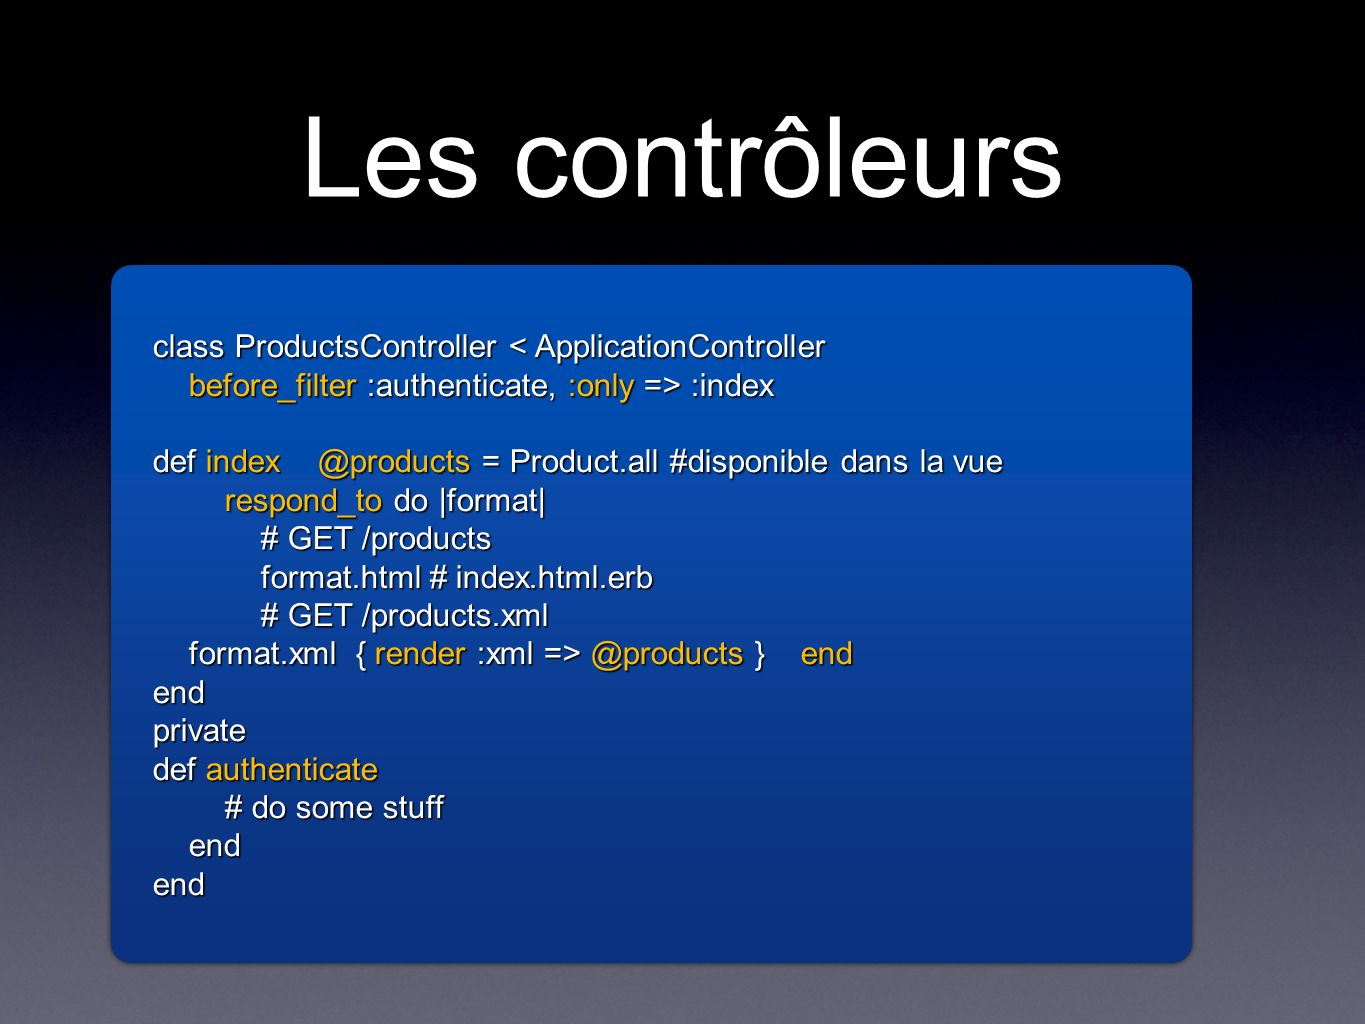 Les contrôleurs class ProductsController < ApplicationController before_filter :authenticate, :only => :index def index @products = Product.all #disponible dans la vue respond_to do |format| # GET /products format.html # index.html.erb # GET /products.xml format.xml { render :xml => @products } end endprivate def authenticate # do some stuff endend class ProductsController < ApplicationController before_filter :authenticate, :only => :index def index @products = Product.all #disponible dans la vue respond_to do |format| # GET /products format.html # index.html.erb # GET /products.xml format.xml { render :xml => @products } end endprivate def authenticate # do some stuff endend